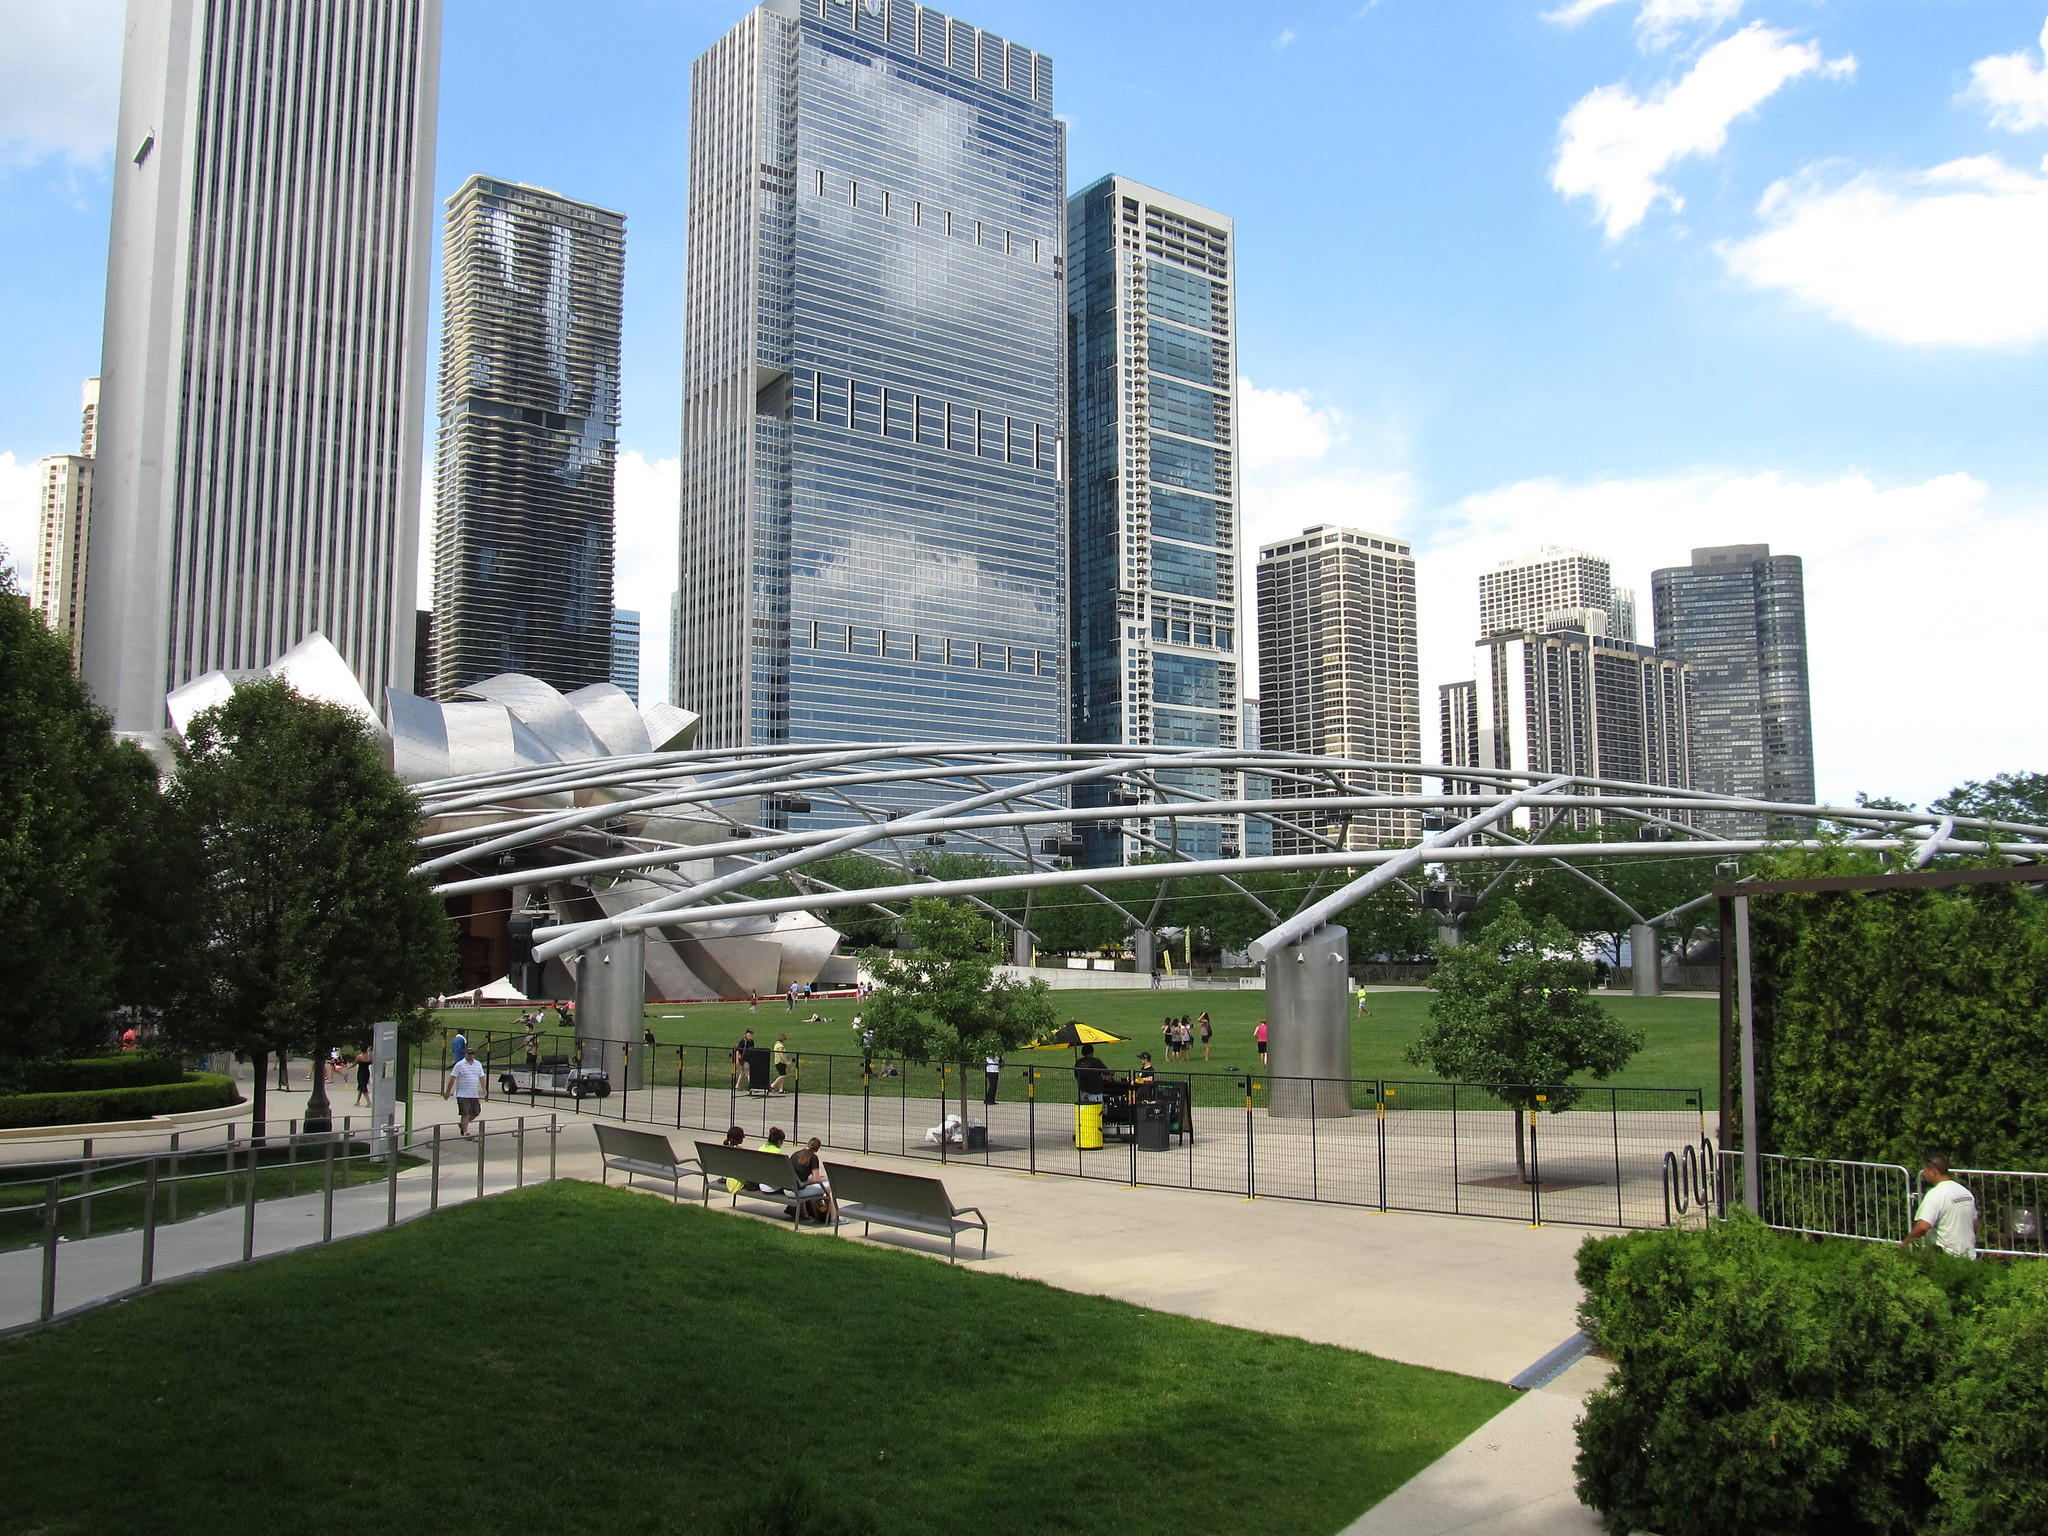 Amazing Place to See in Chicago-Millennium Park